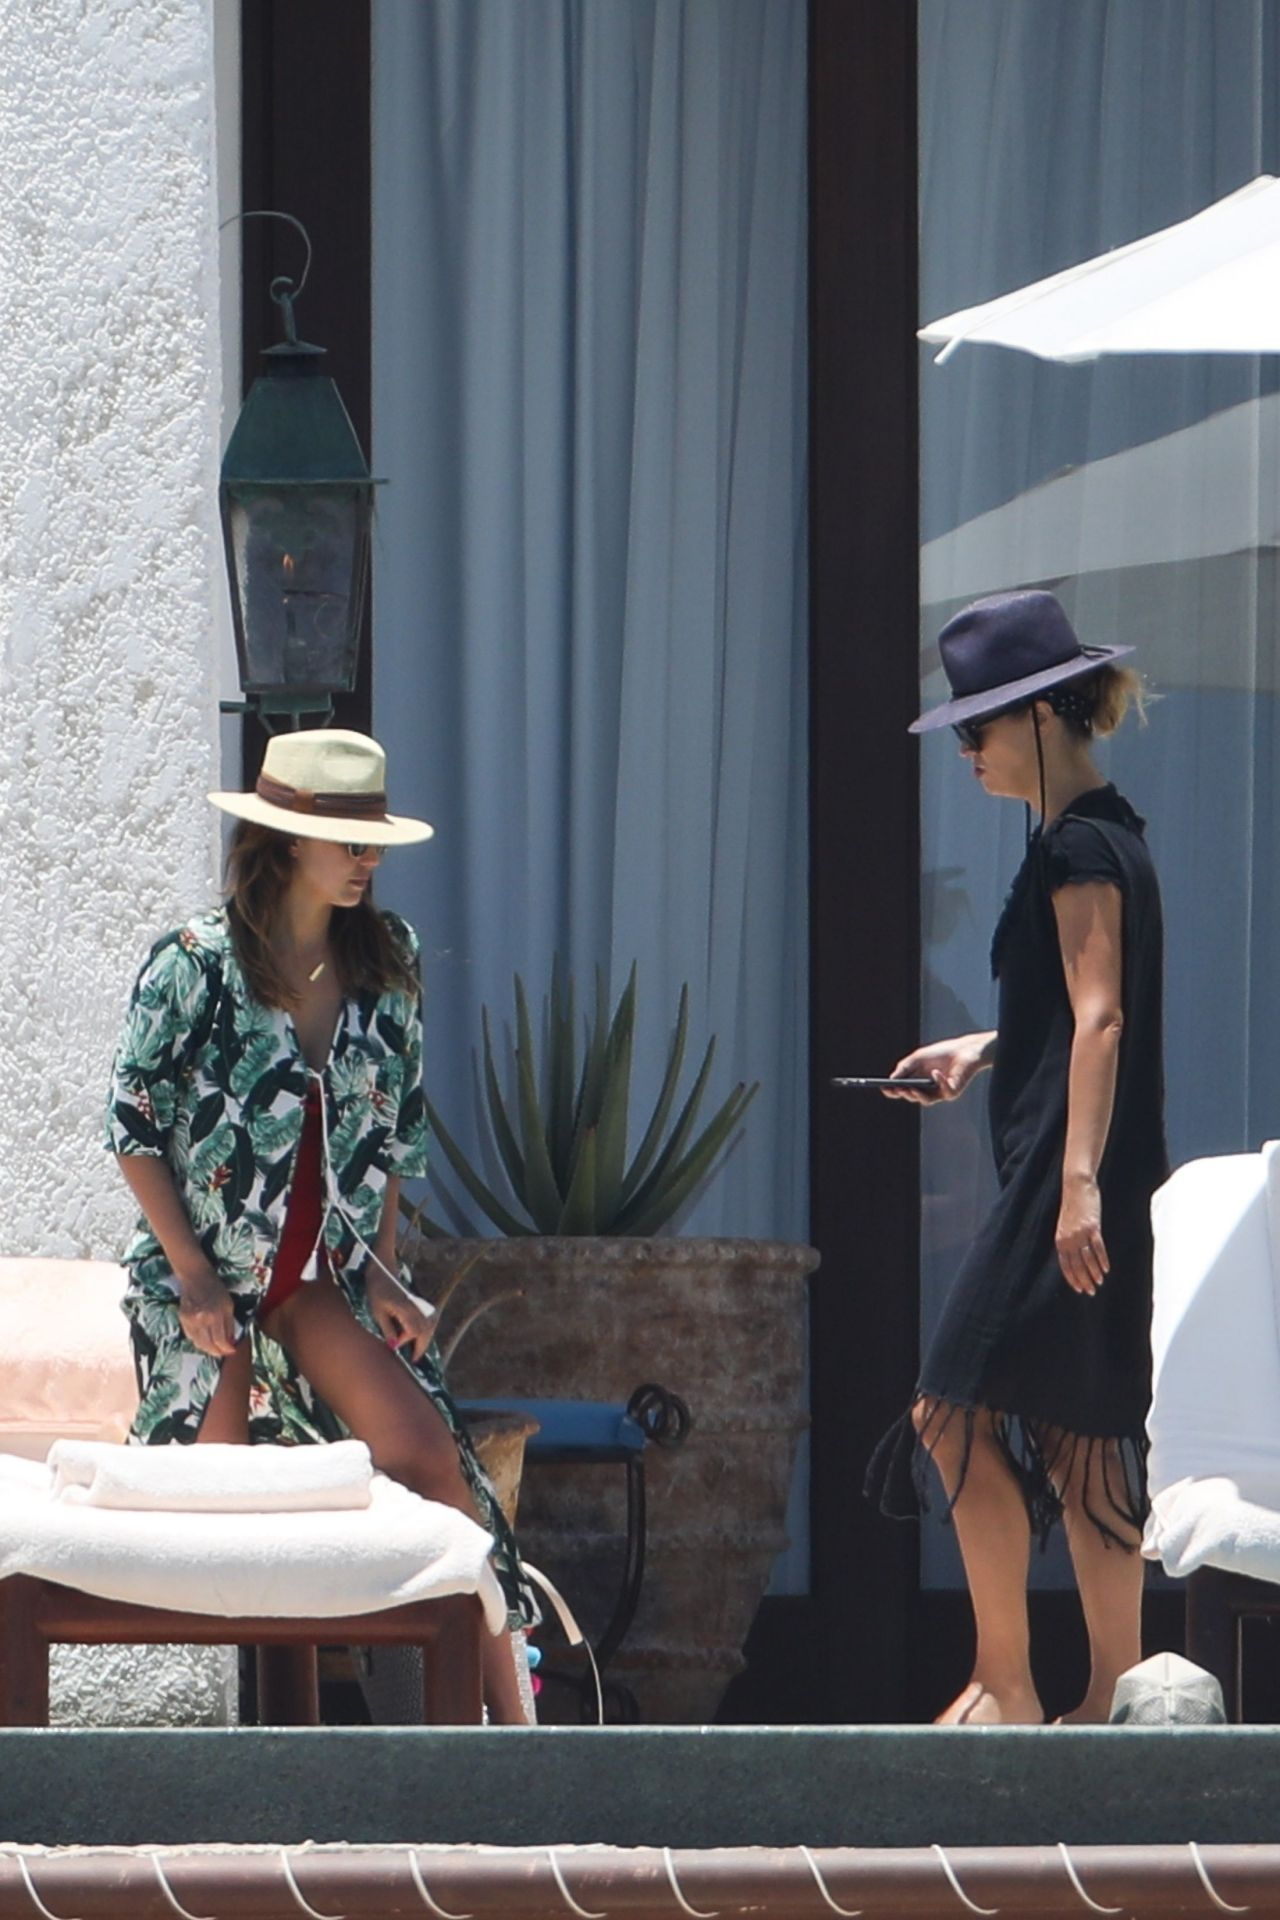 https://i0.wp.com/celebmafia.com/wp-content/uploads/2018/05/jessica-alba-relaxing-at-a-resort-in-cabo-san-lucas-05-02-2018-5.jpg